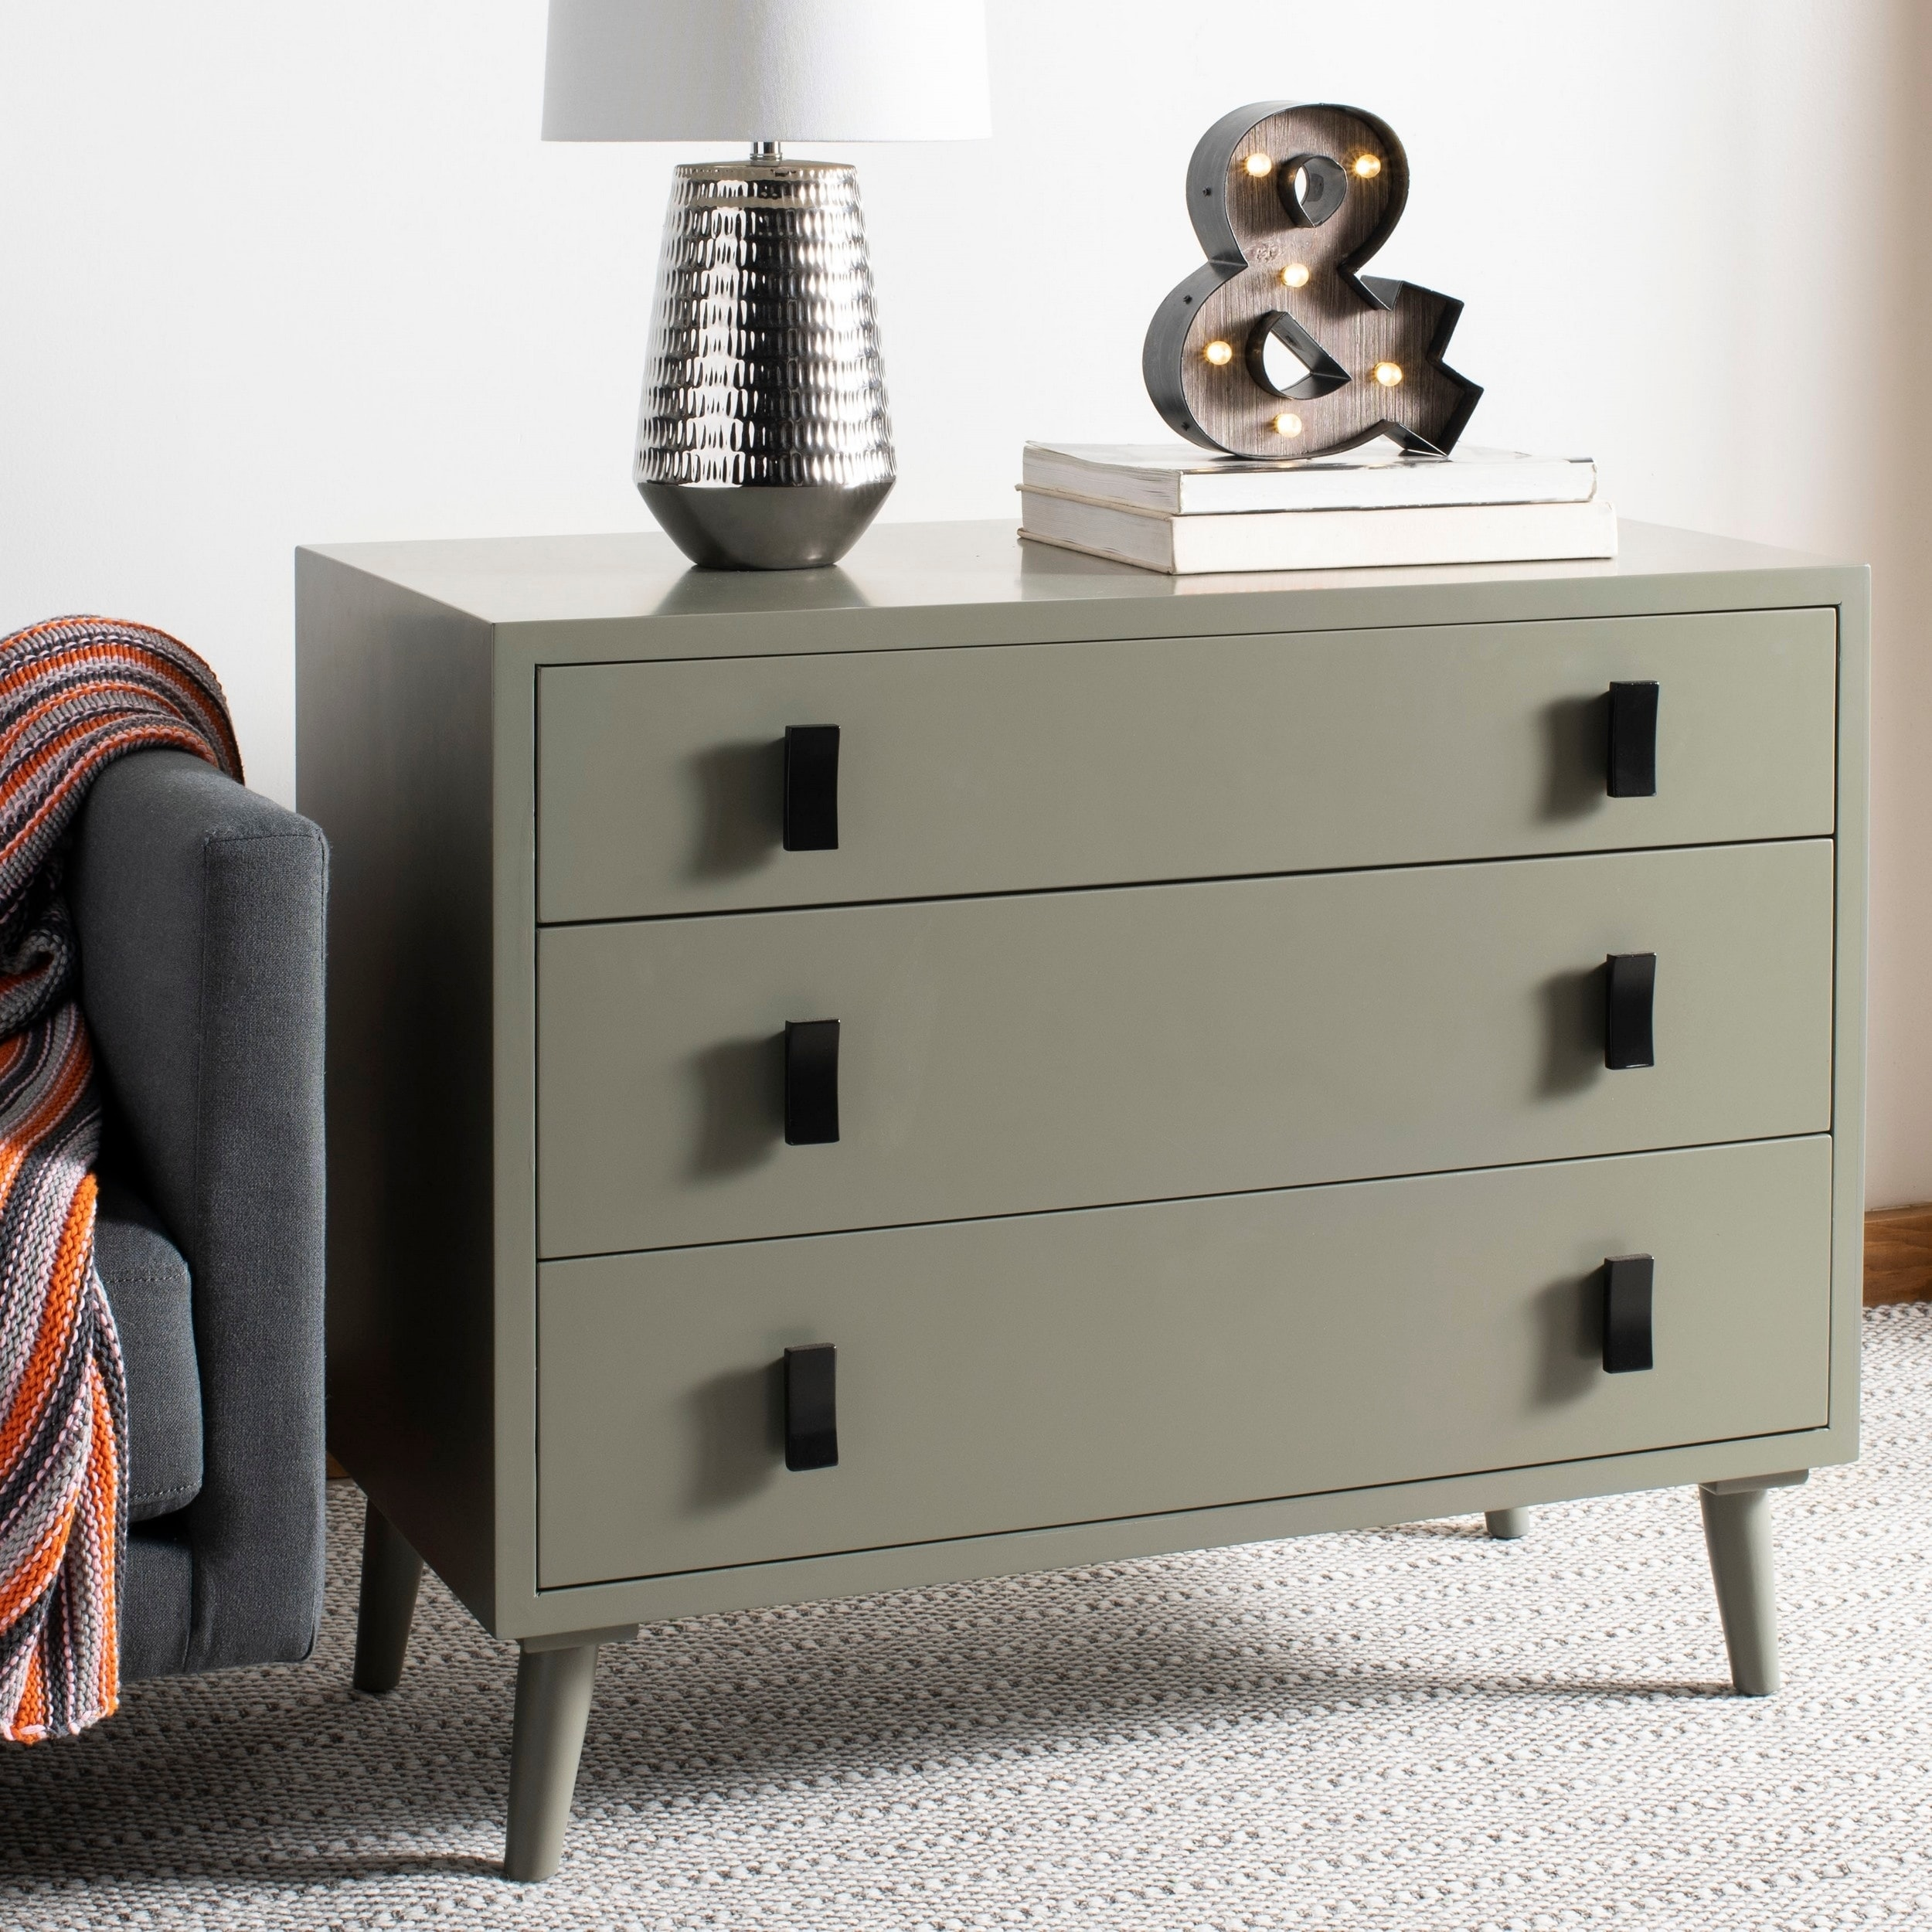 Safavieh Blaize 3 Drawer Chest - Dark Grey / Black